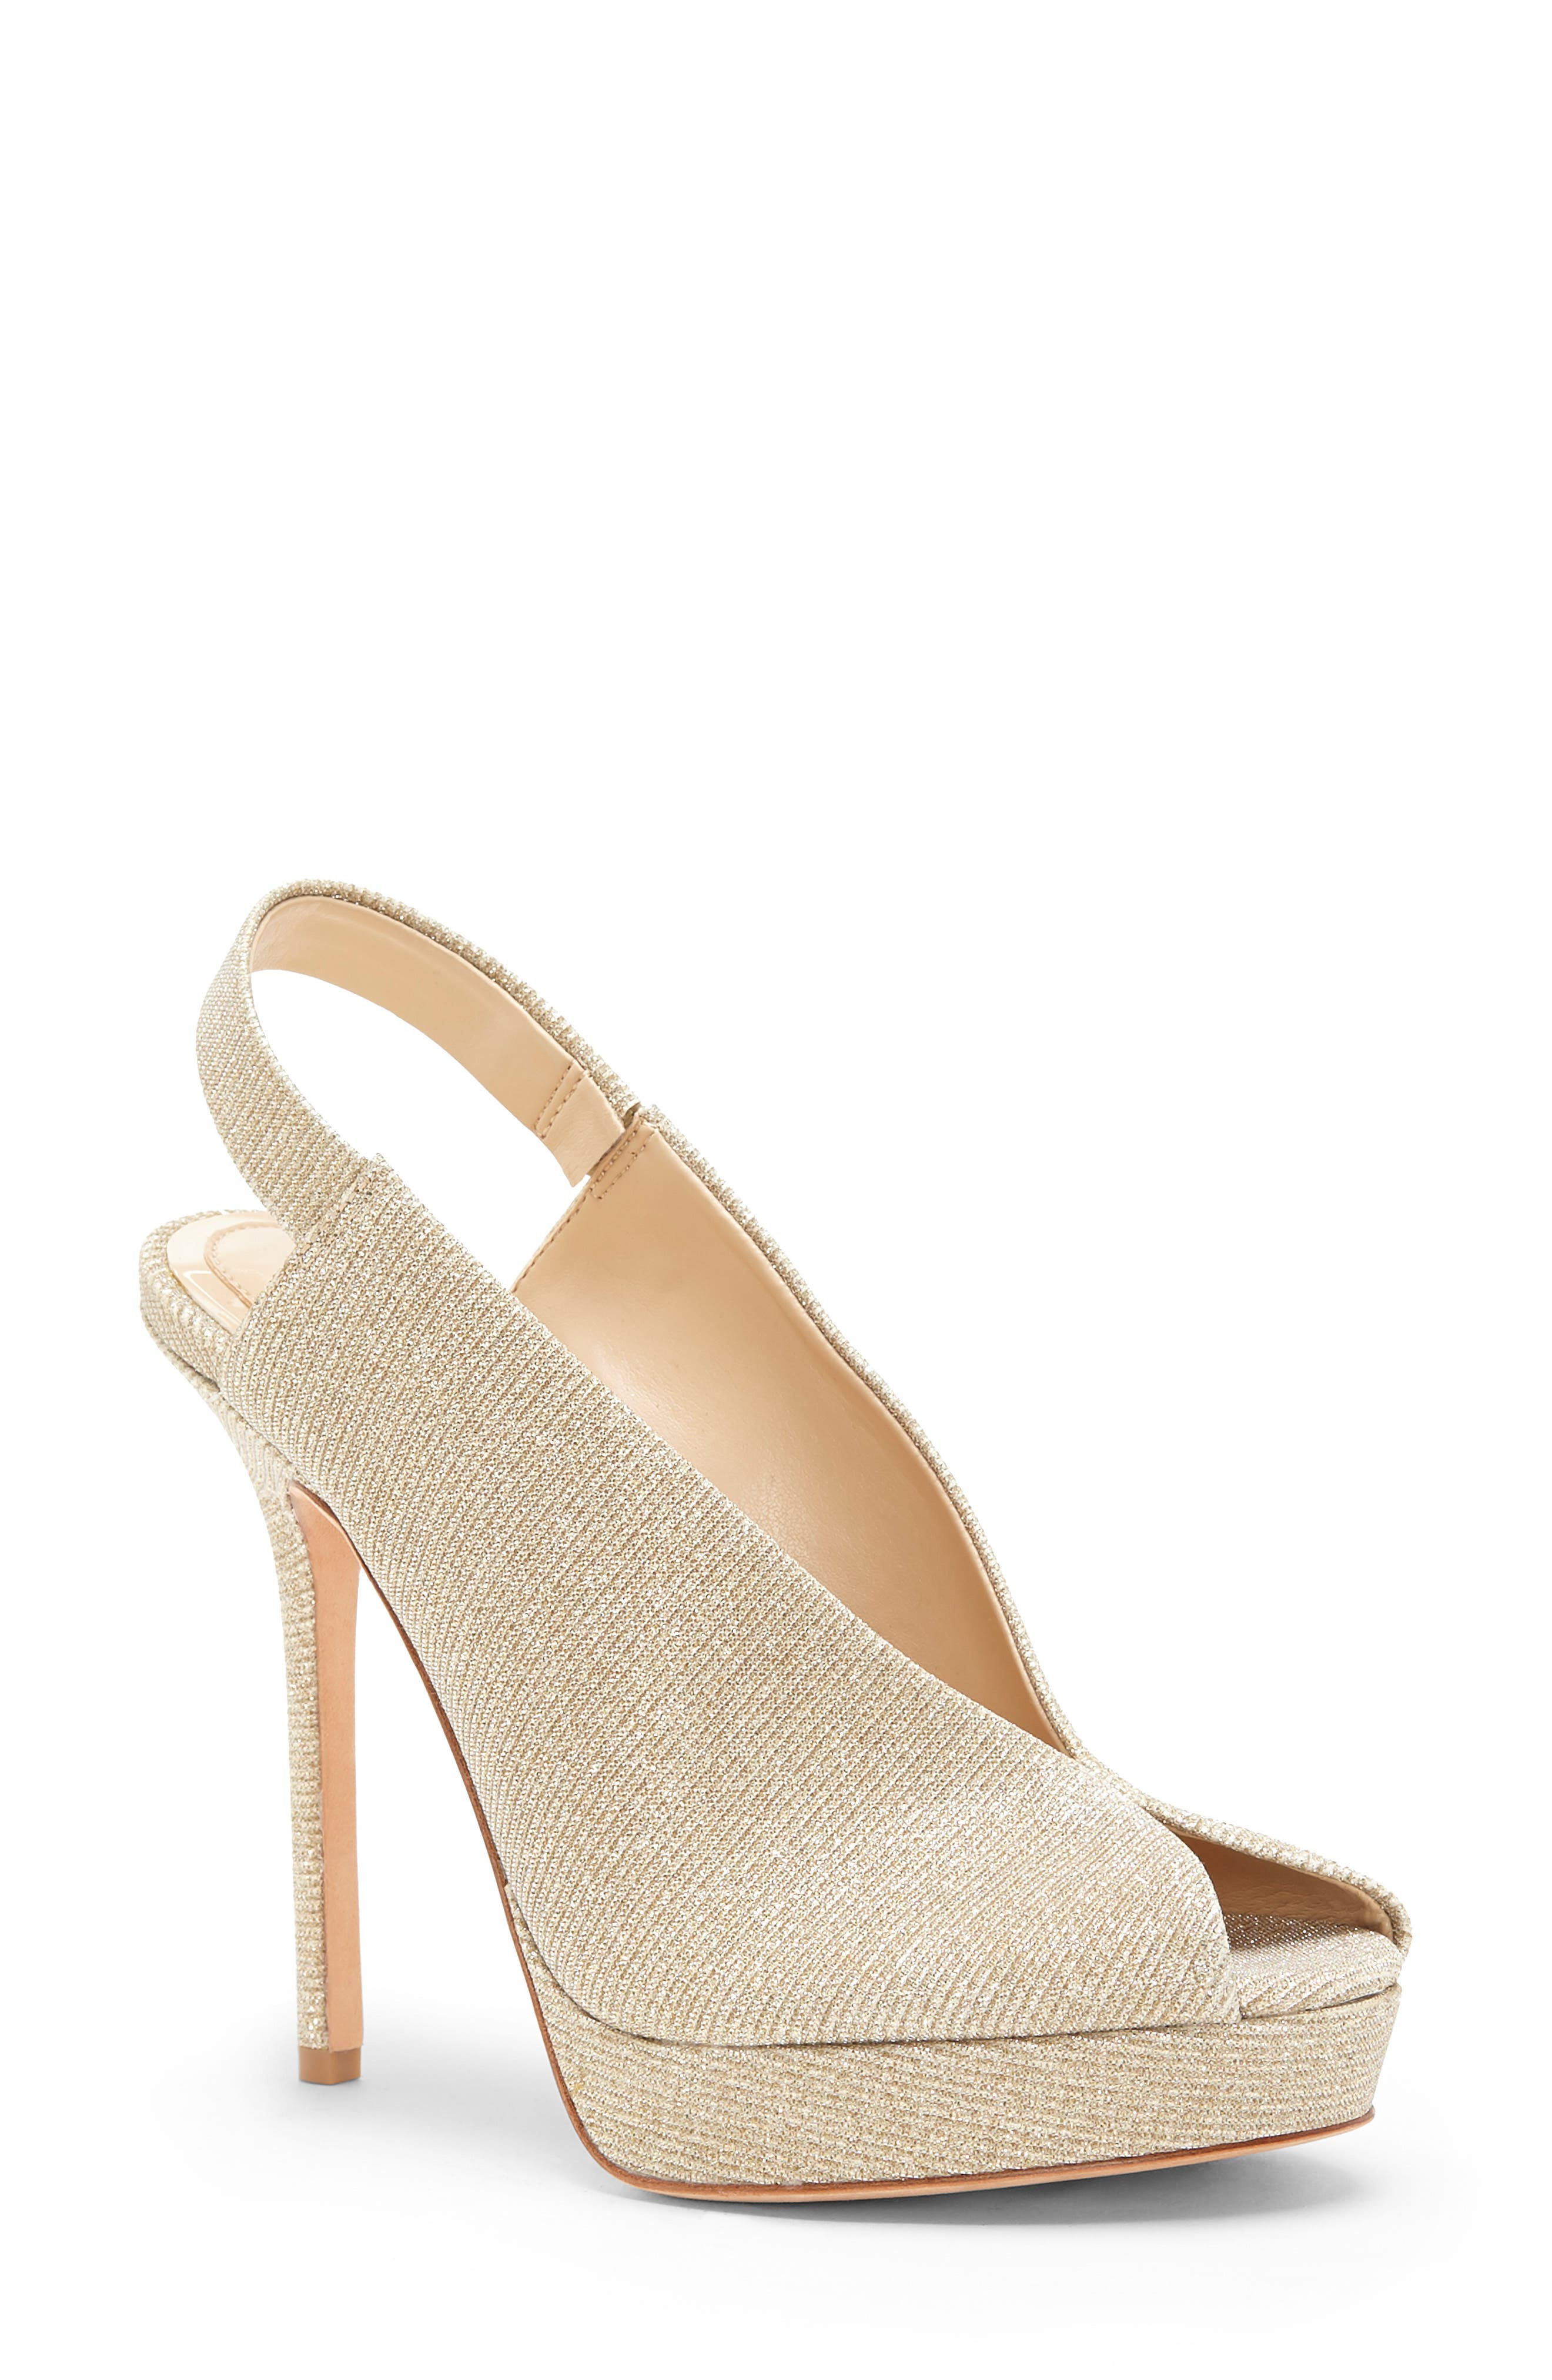 Imagine By Vince Camuto Reany Platform Sandal- Metallic